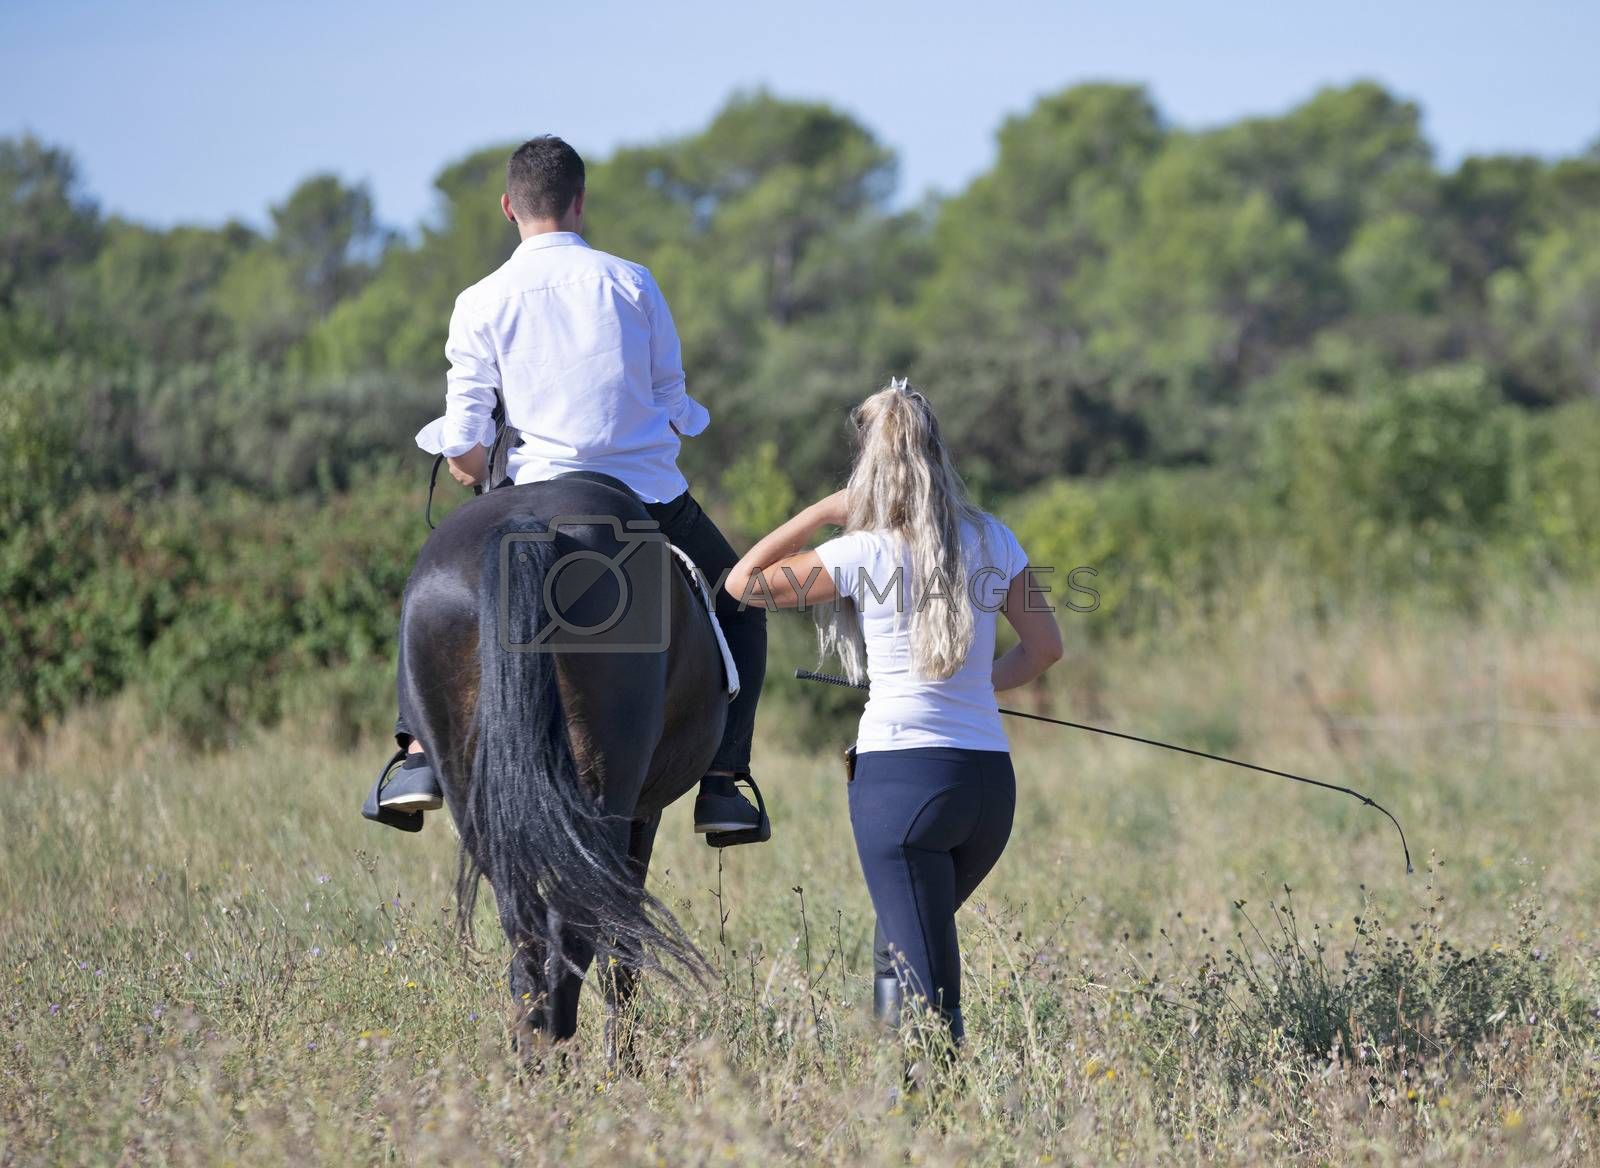 riding teenager are training her black horse